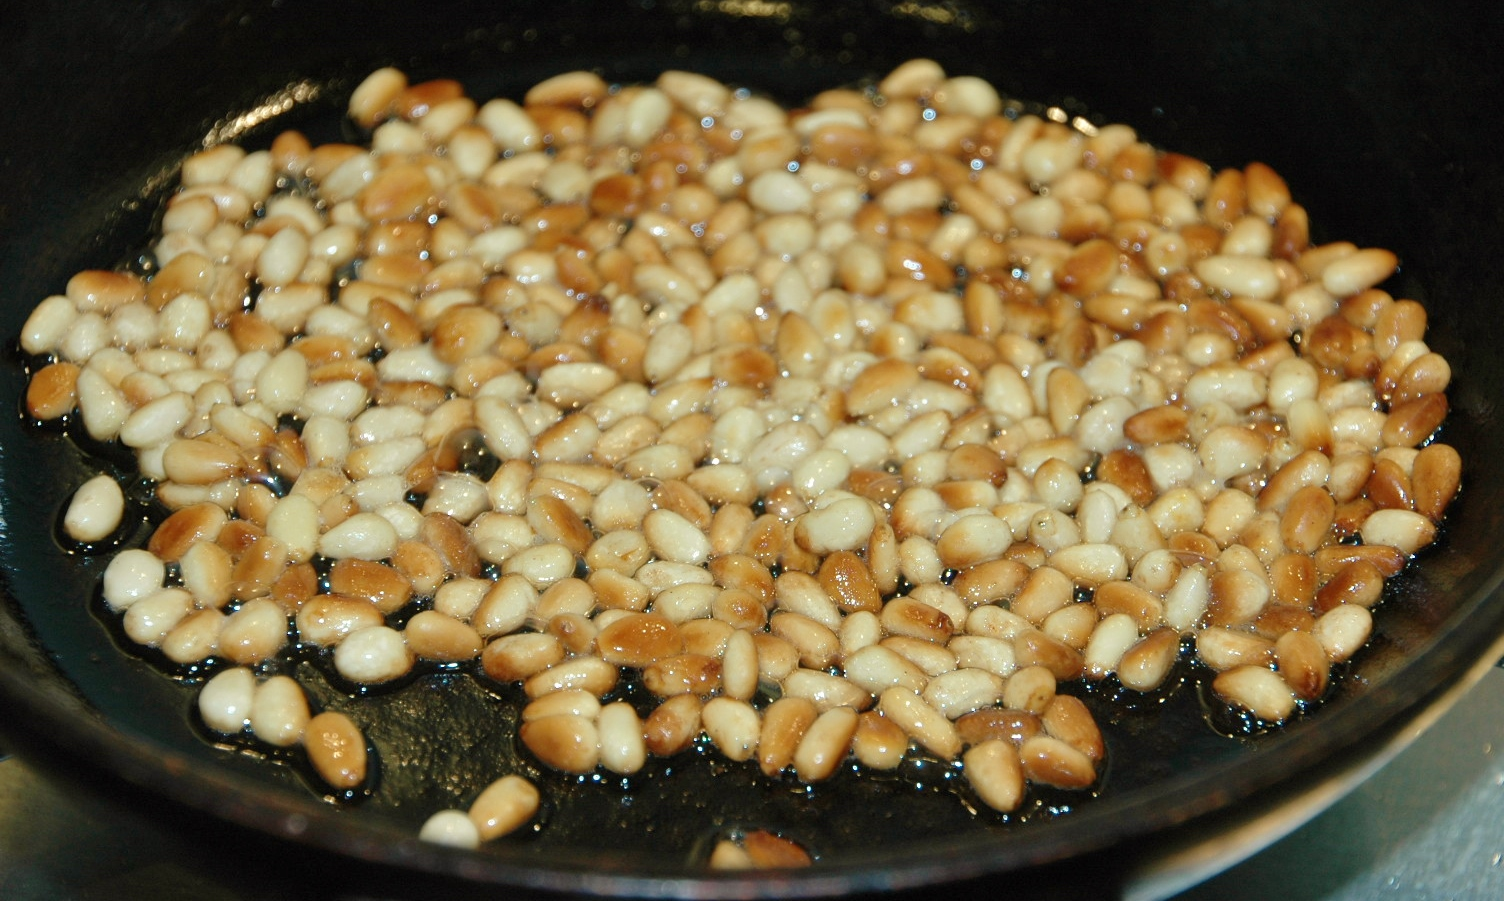 toasting the pinenuts in 1 teaspoon of garlic infused oil